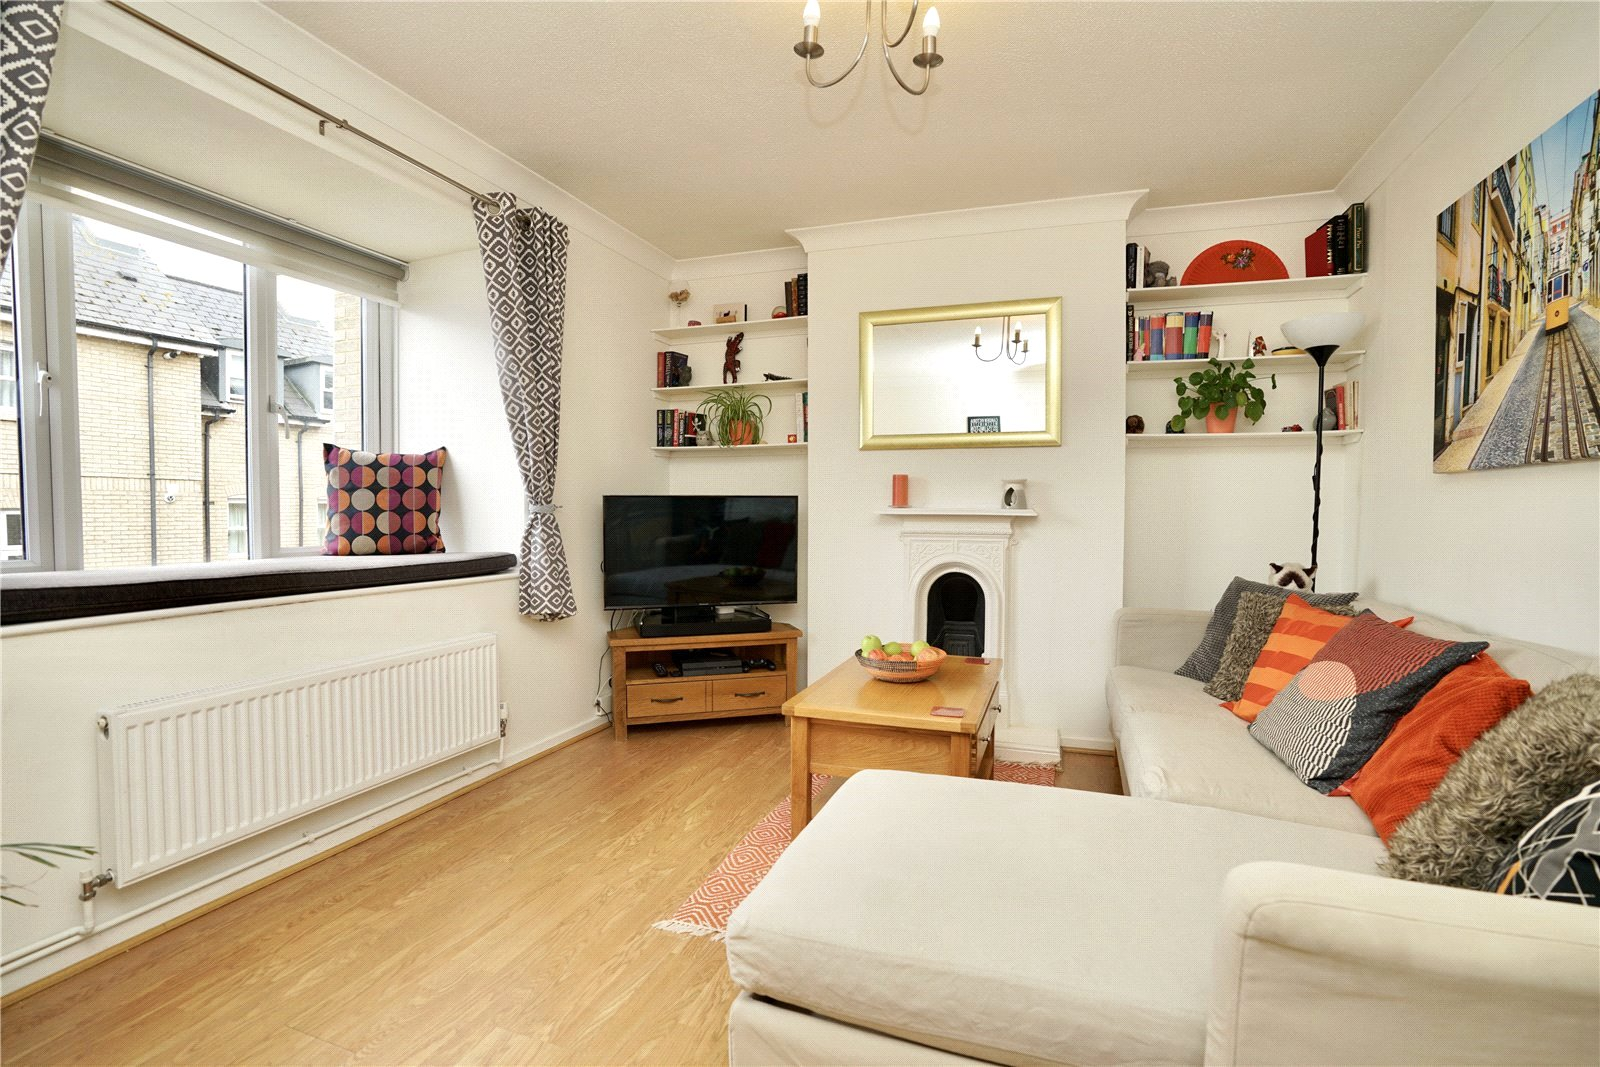 2 bed apartment for sale in St. Ives, PE27 5EA - Property Image 1